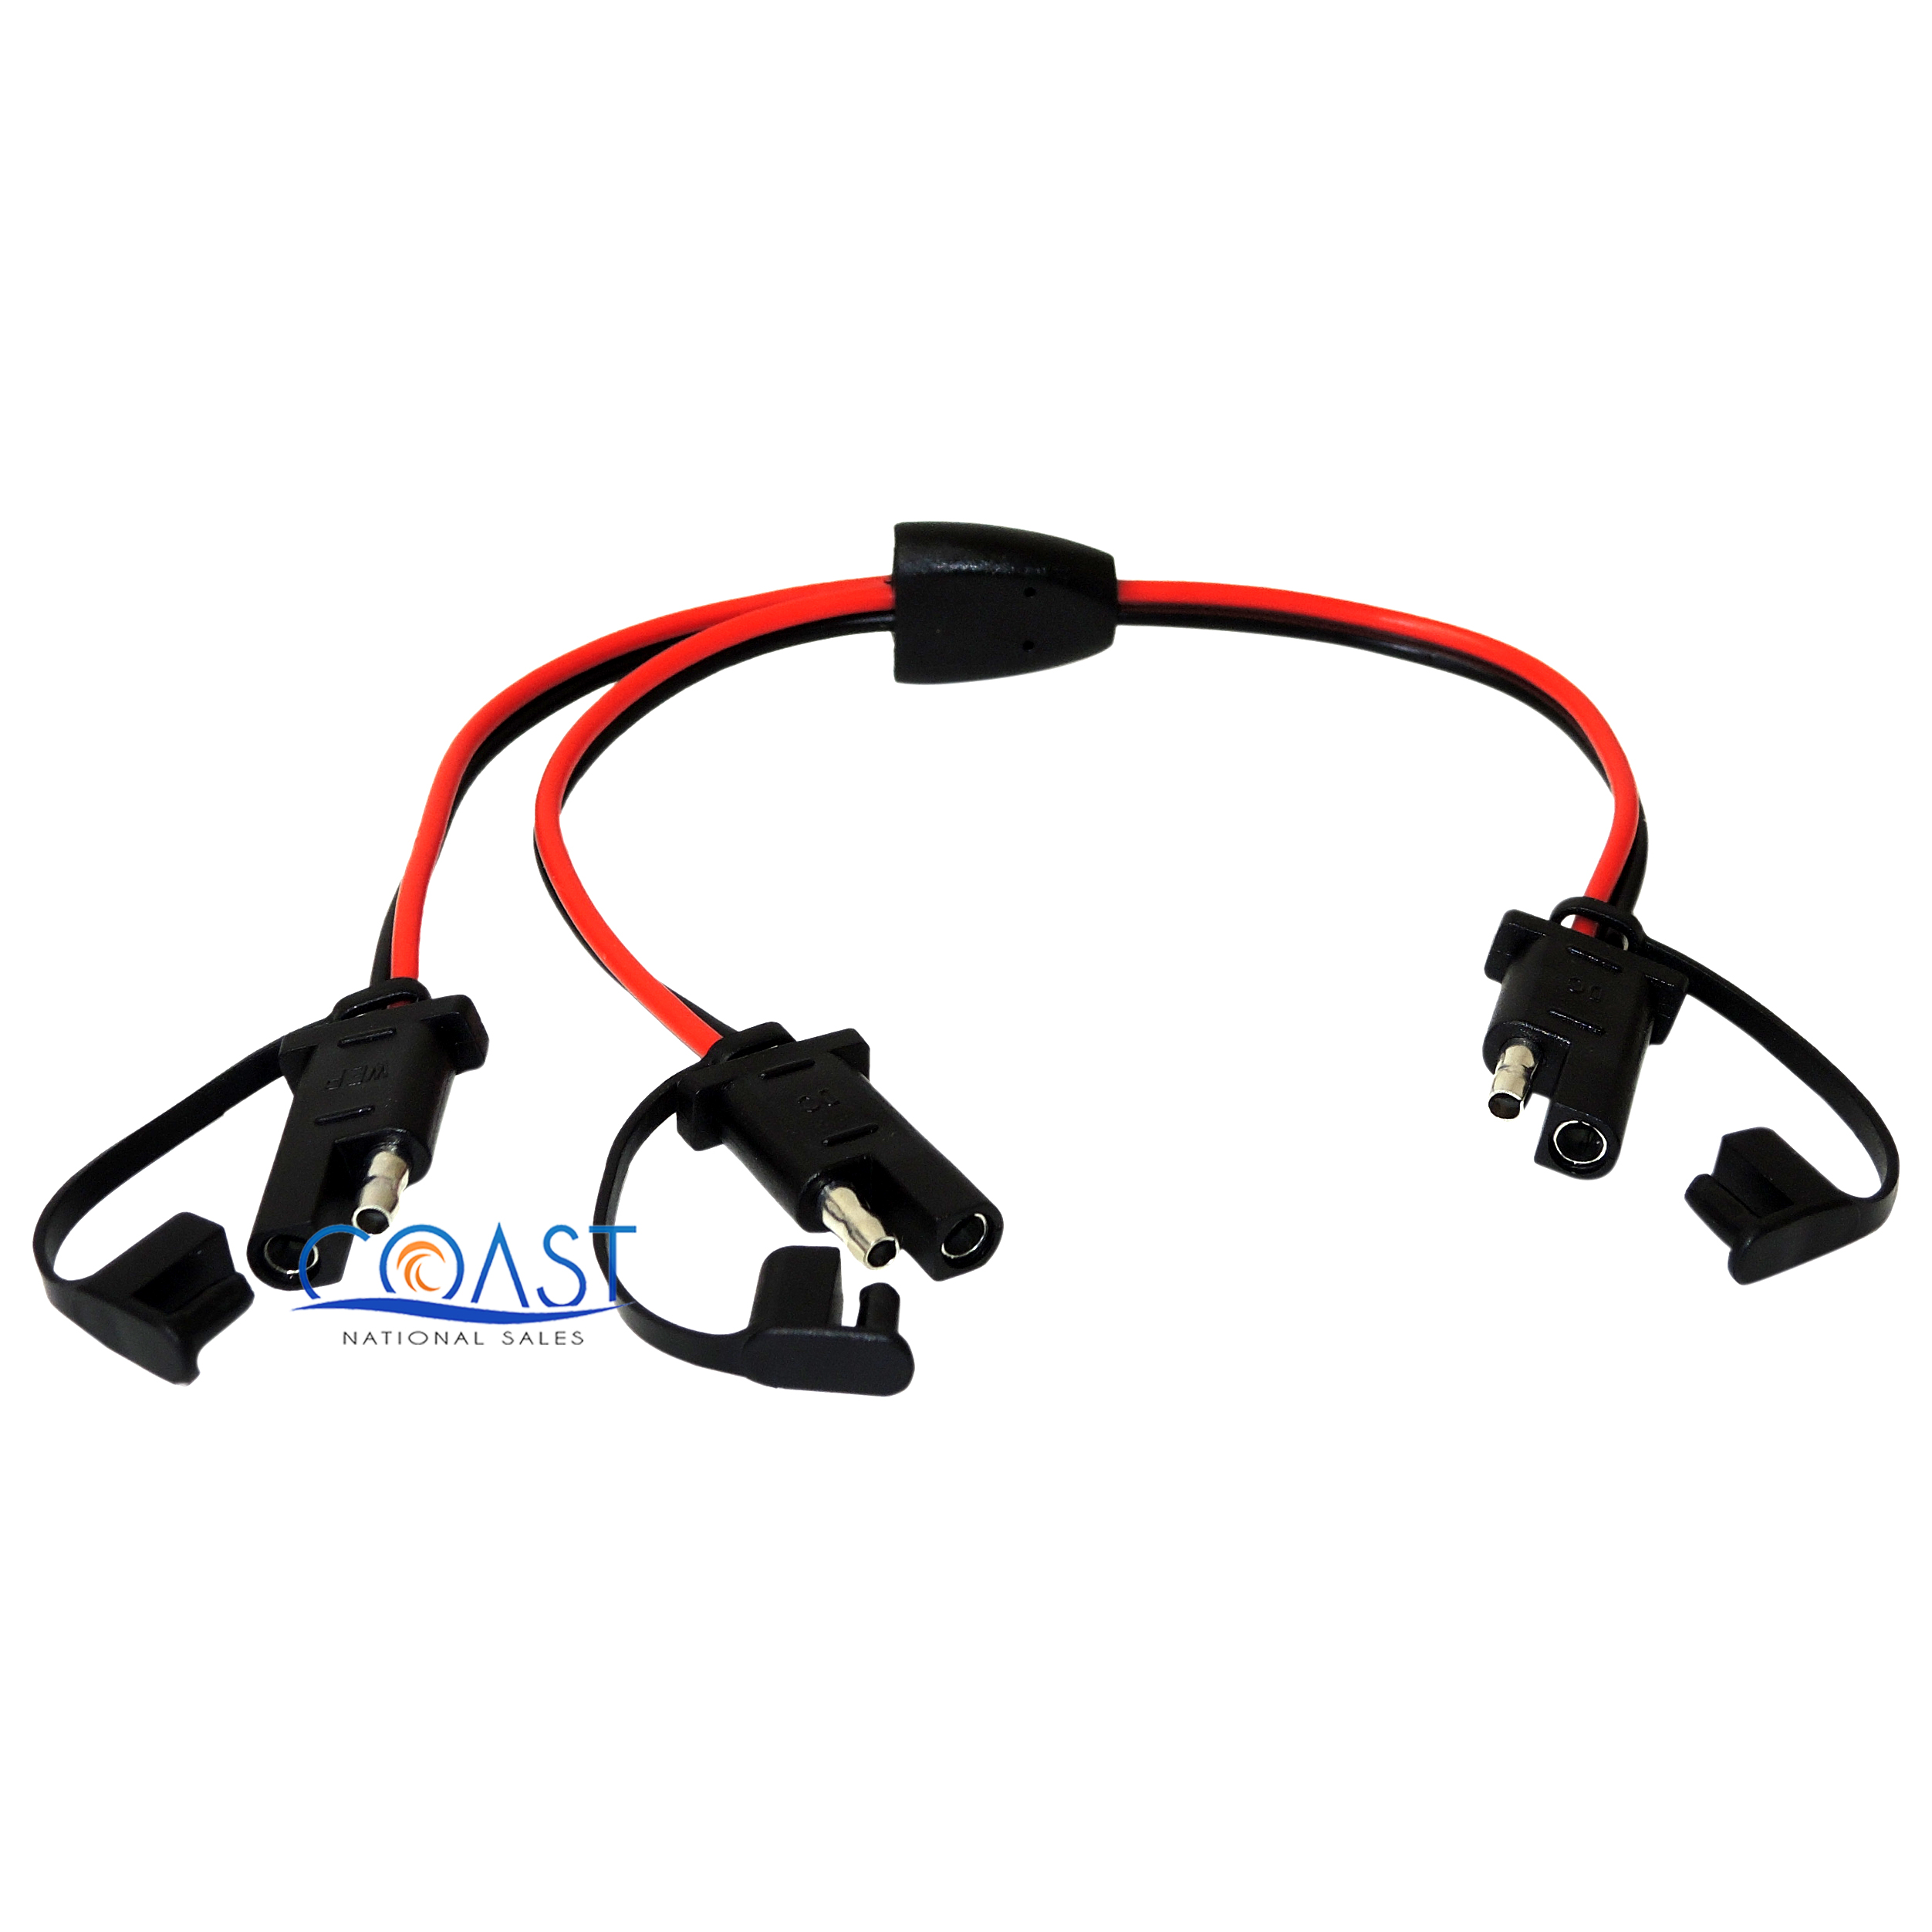 14 Gauge 12 Quick Disconnect Power Cable 2 Pin Audio Wire Harness Cable